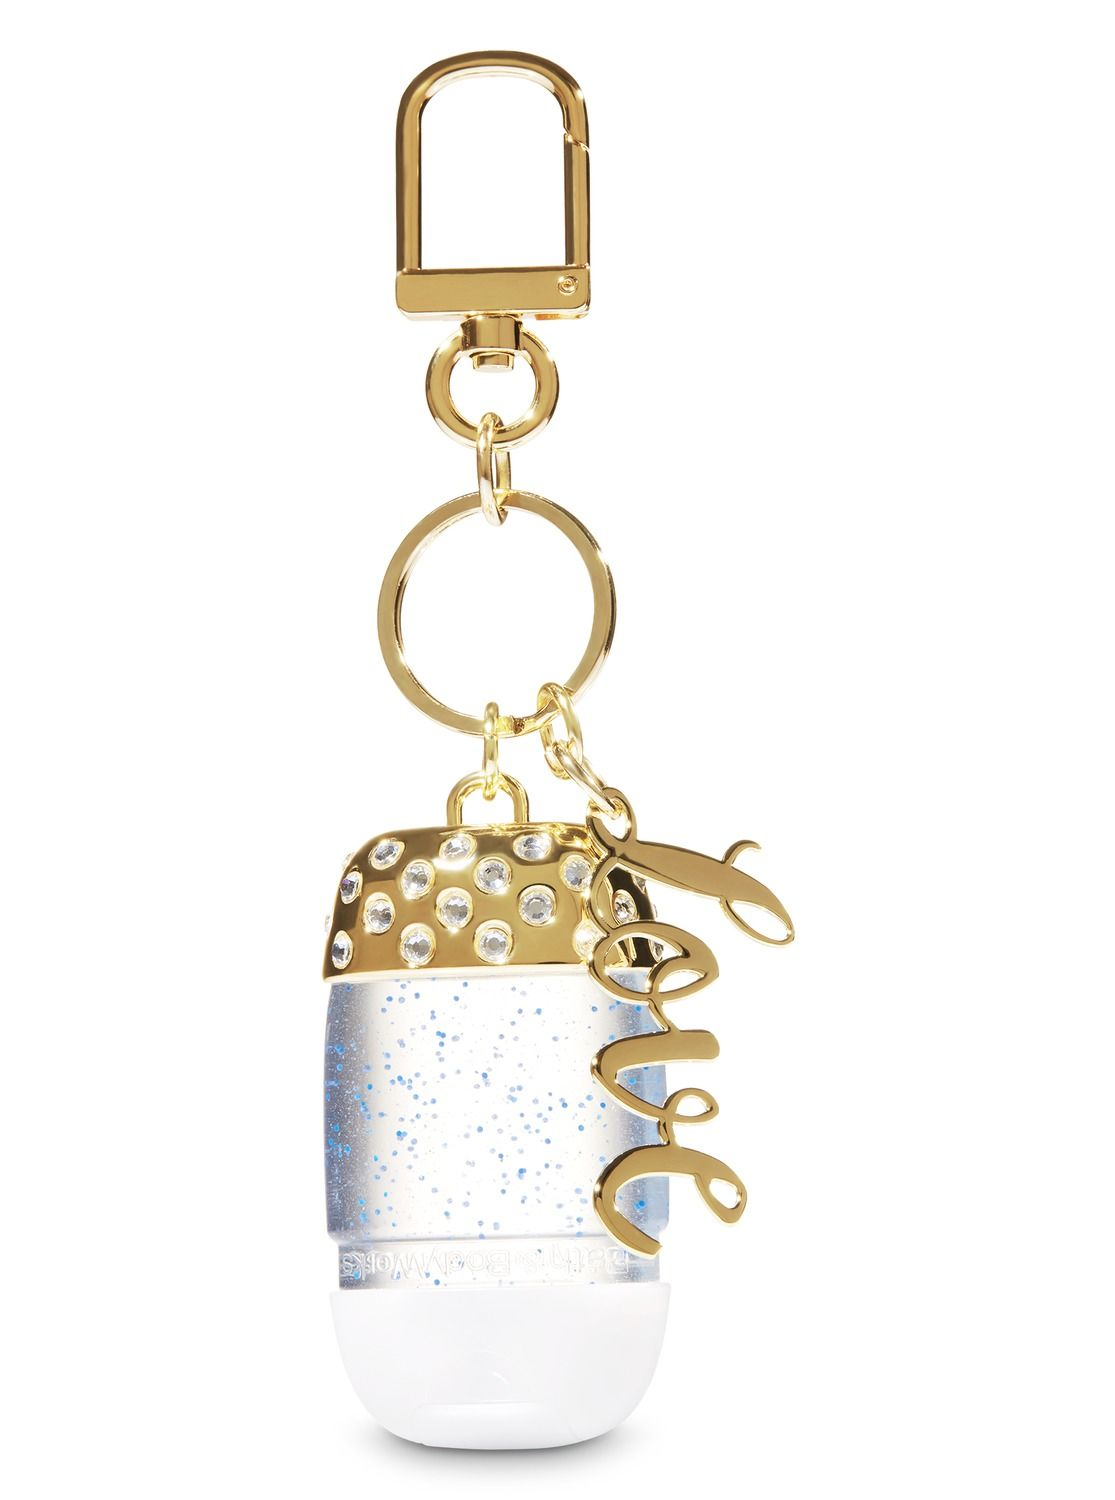 Love S As Good As Gold Pocketbac Holder Bath Body Works Hand